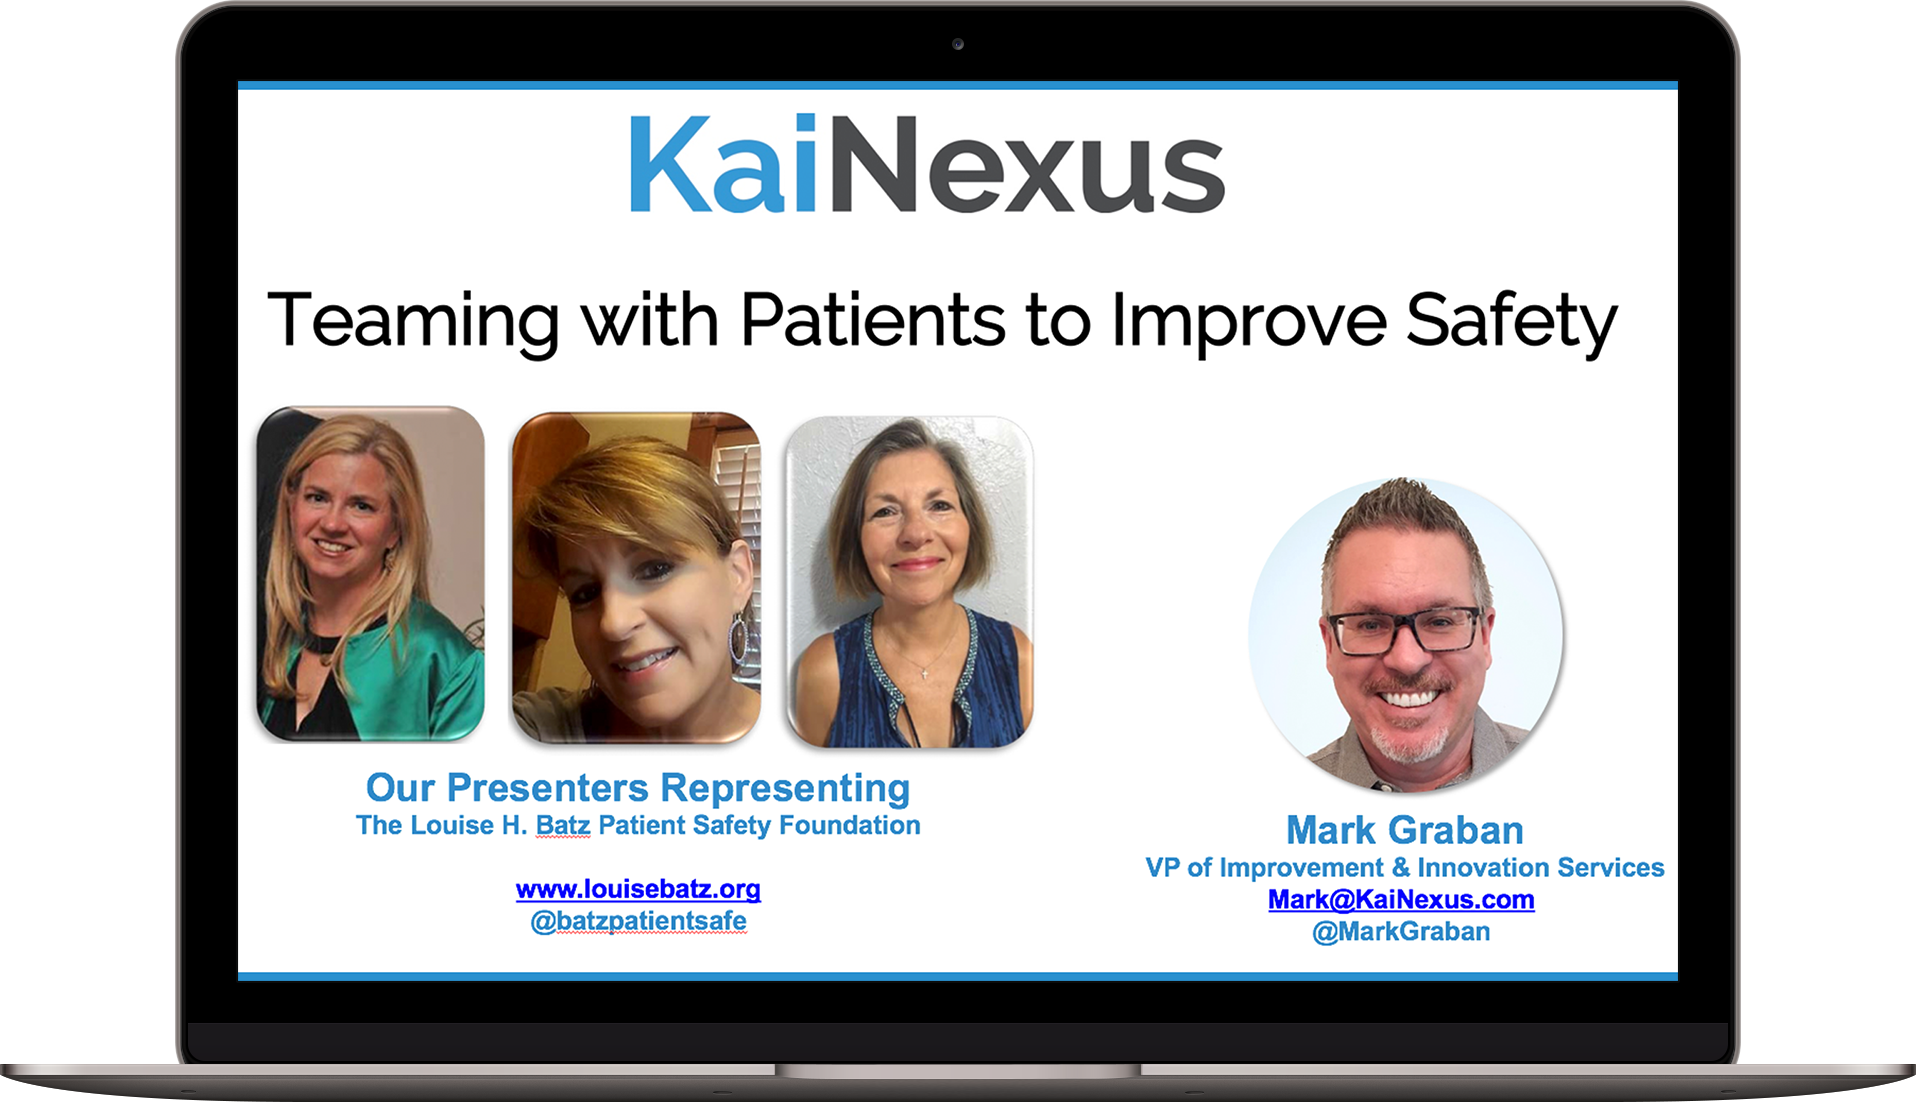 Teaming with Patients to Improve Safety